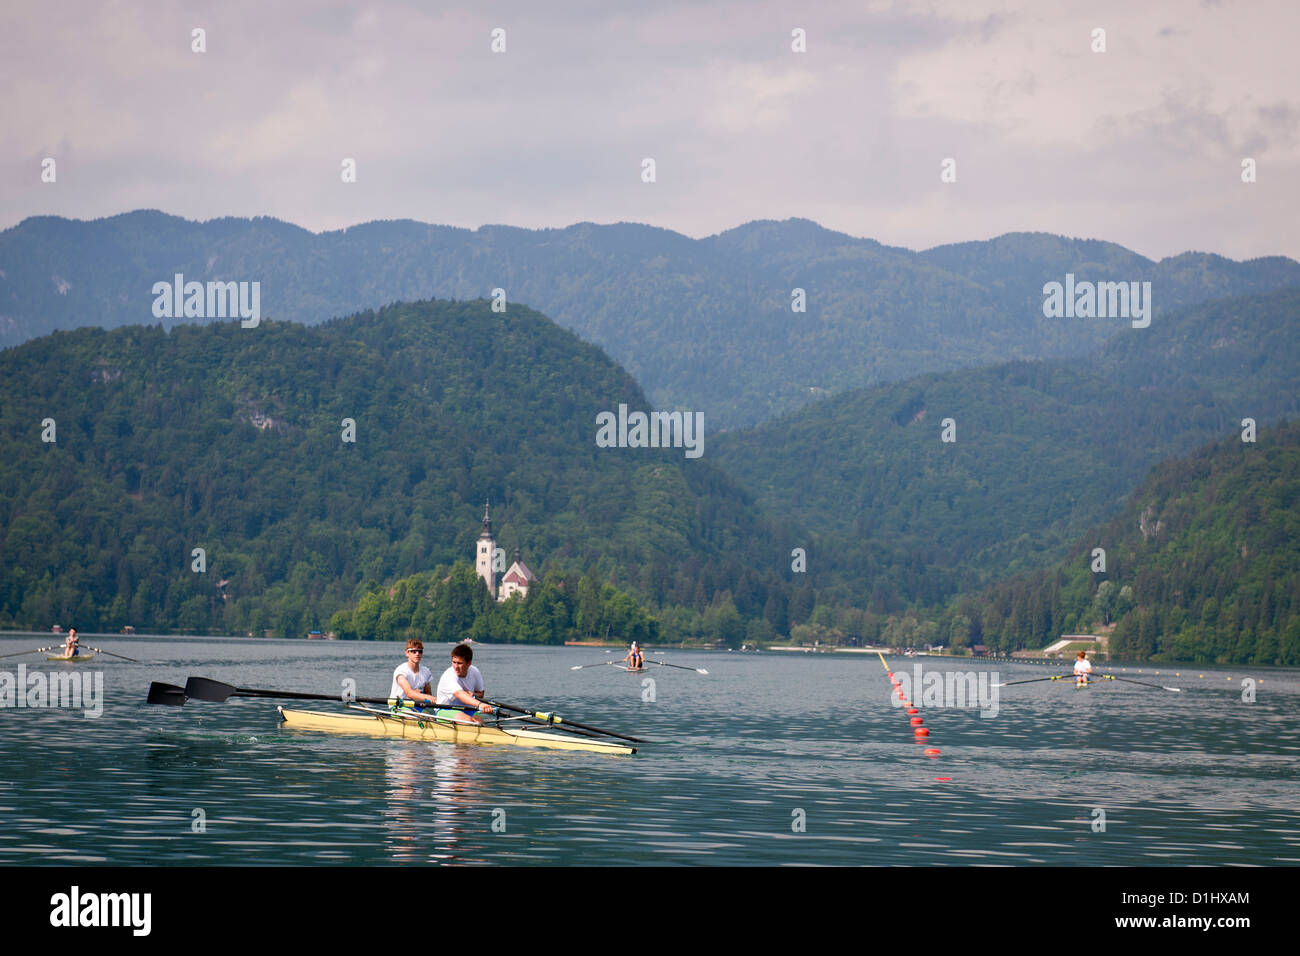 Rowers on Lake Bled, Slovenia - Stock Image